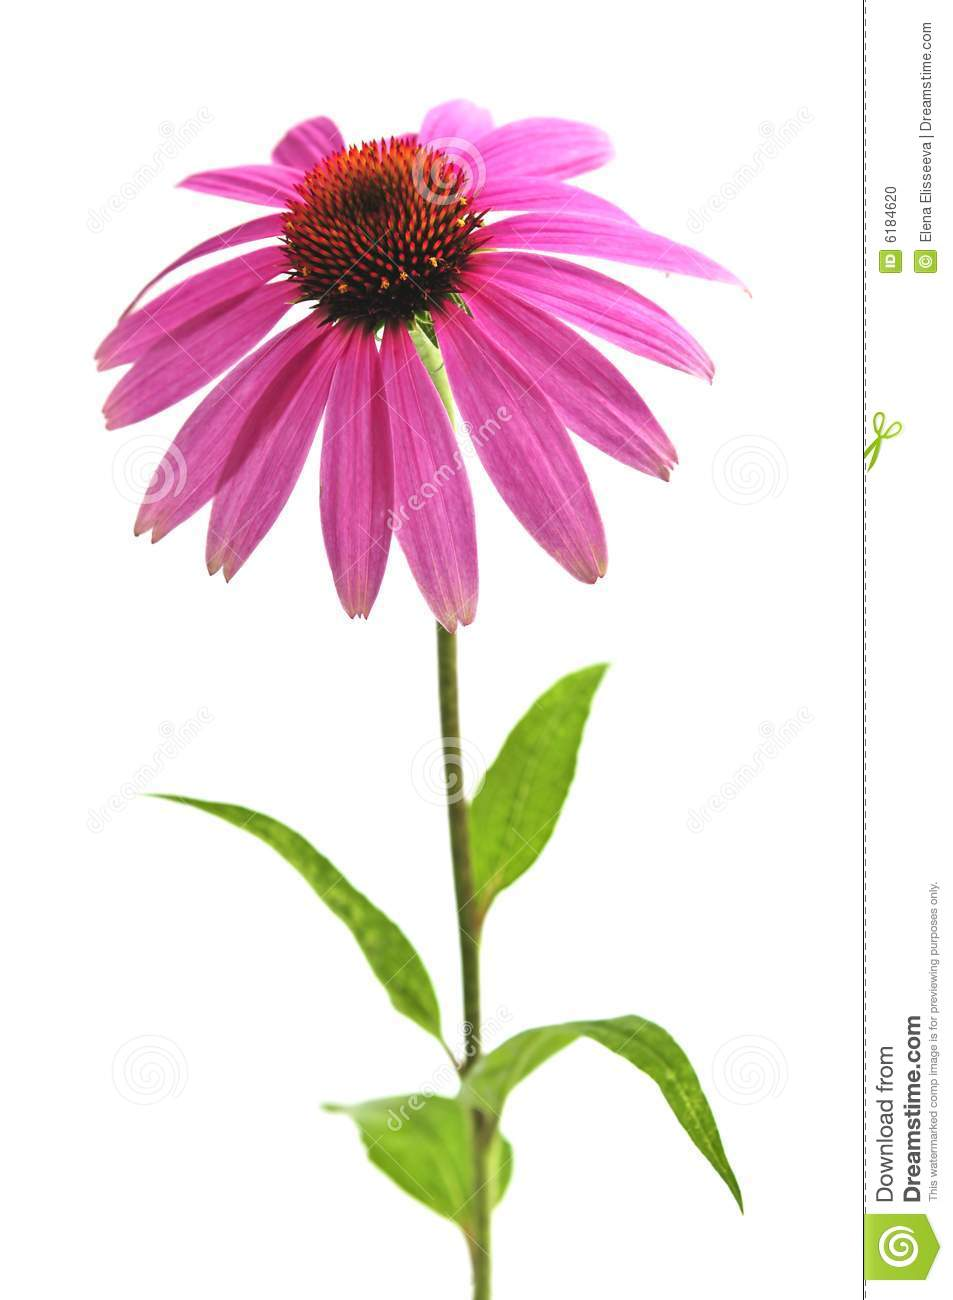 Blooming medicinal herb echinacea purpurea or coneflower isolated on ...